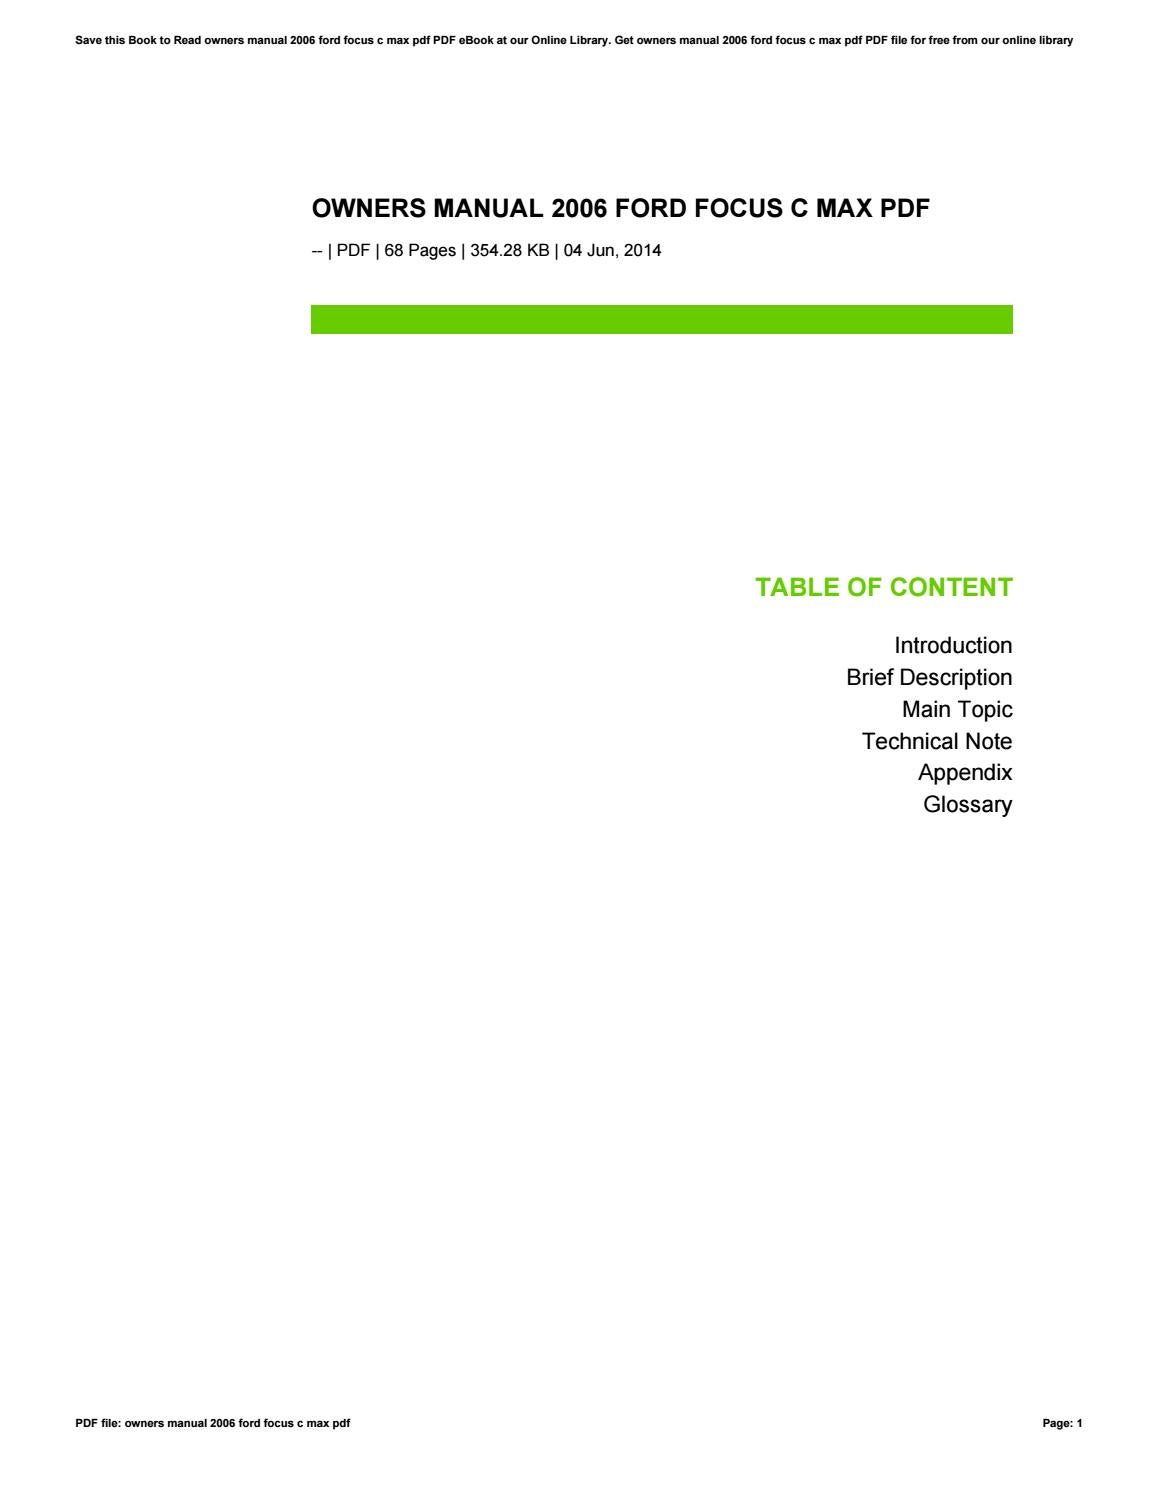 2014 ford focus st owners manual